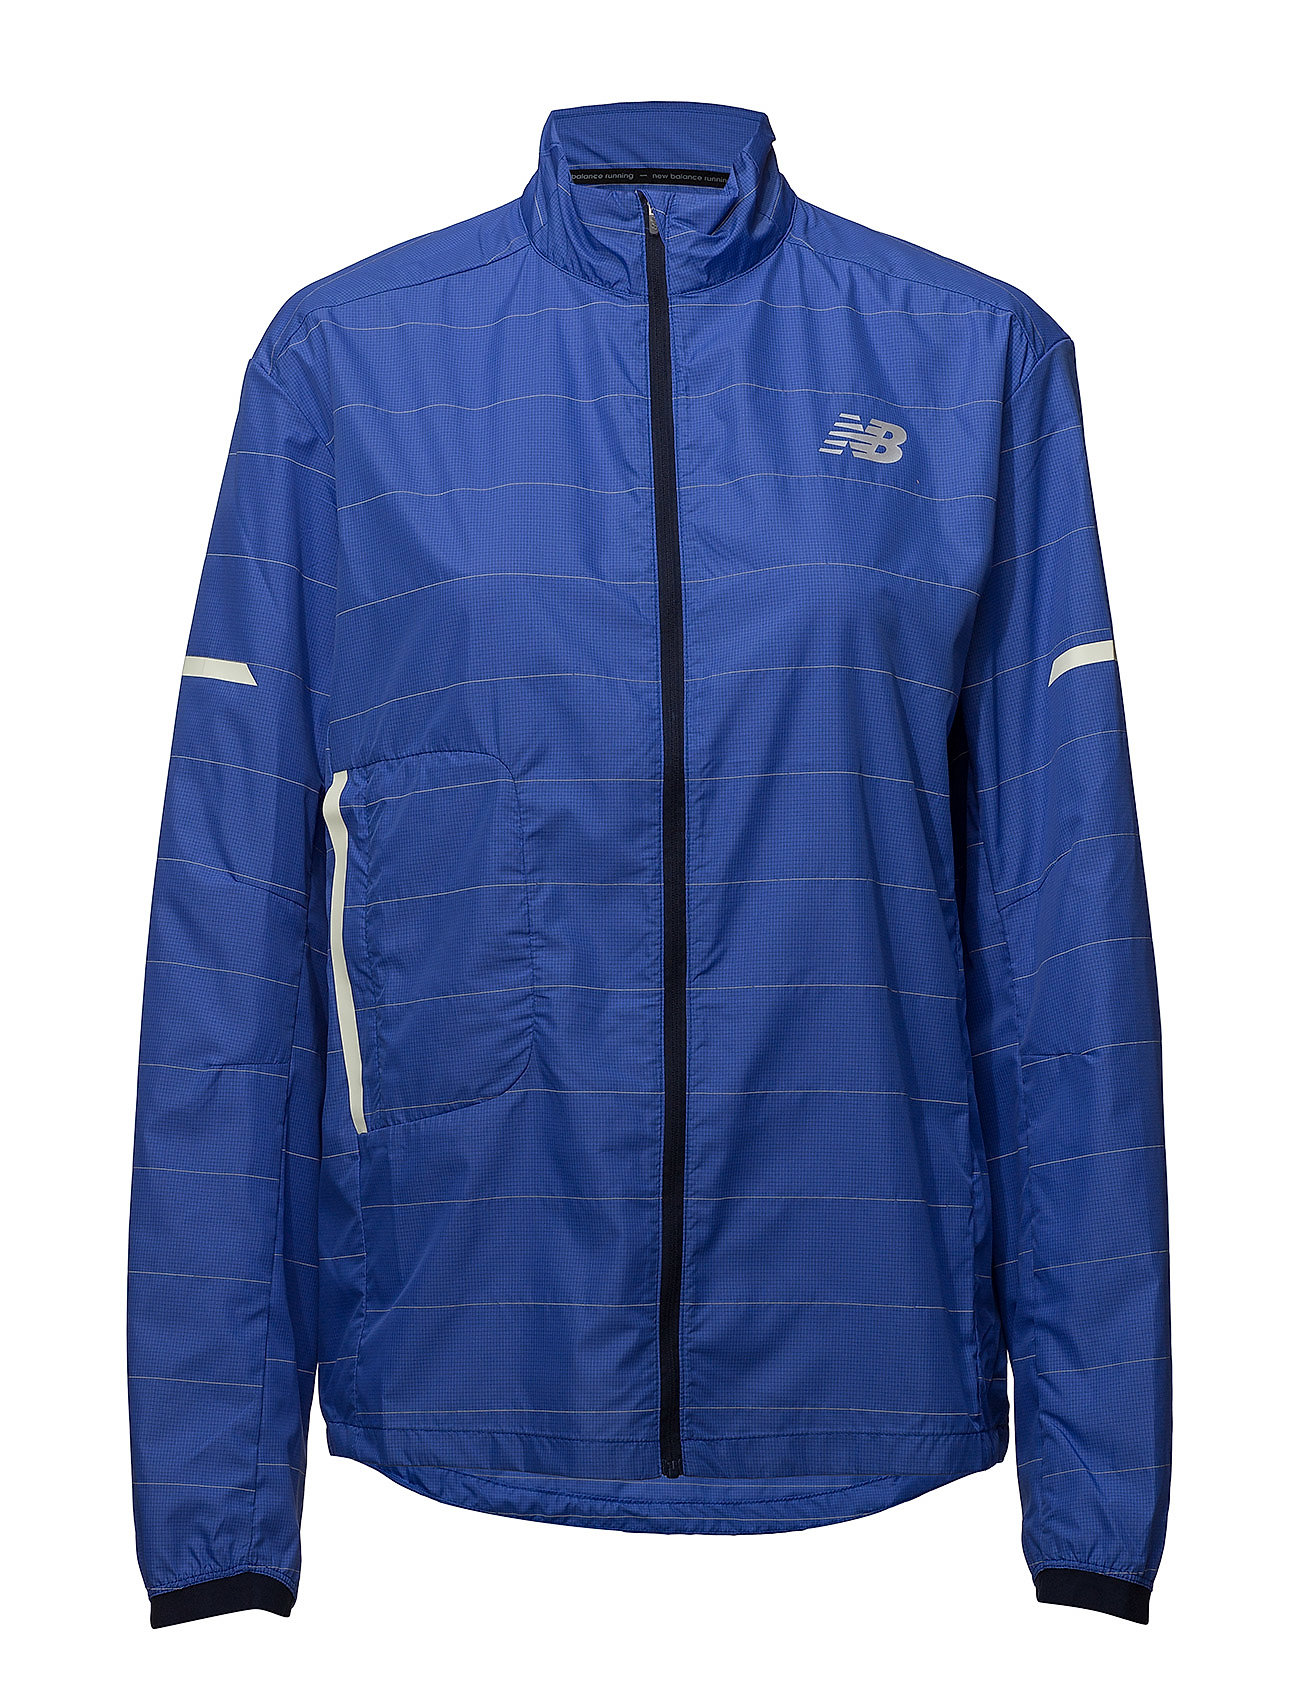 New Balance REFLECTIVE PACKJACKET